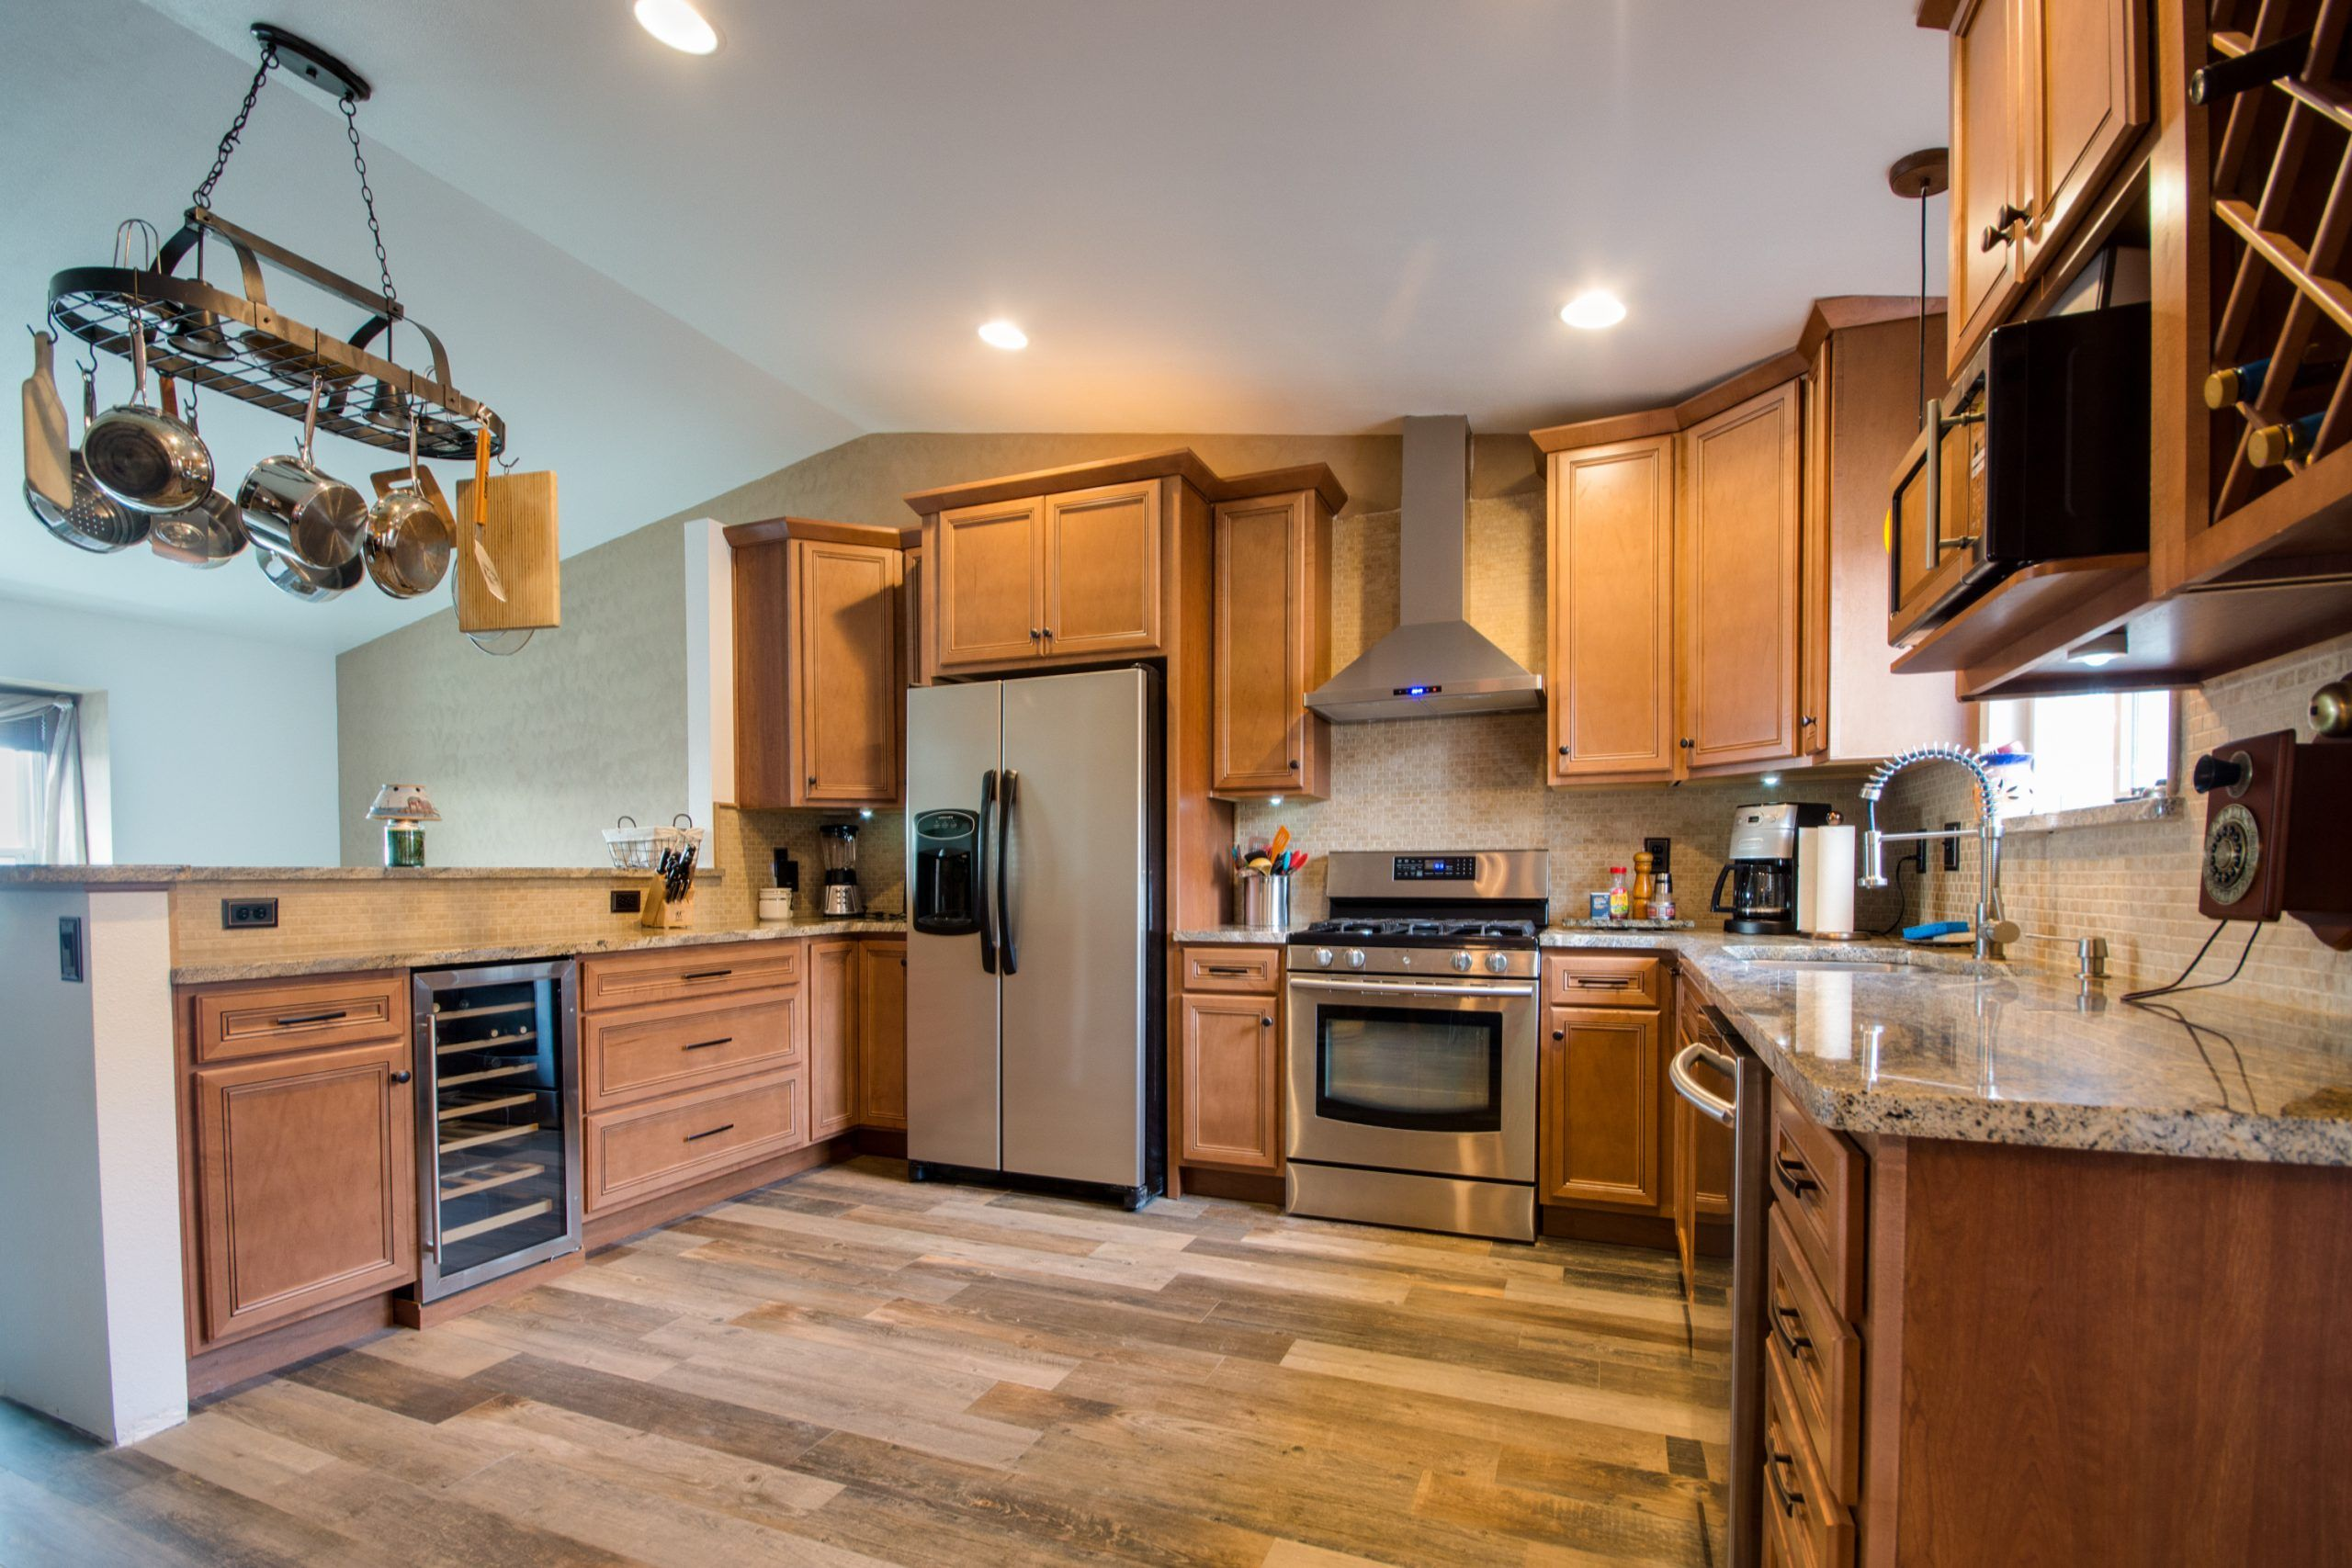 Kitchen Remodeling Colorado Springs In 2020 Home Remodeling Kitchen Remodel Remodel